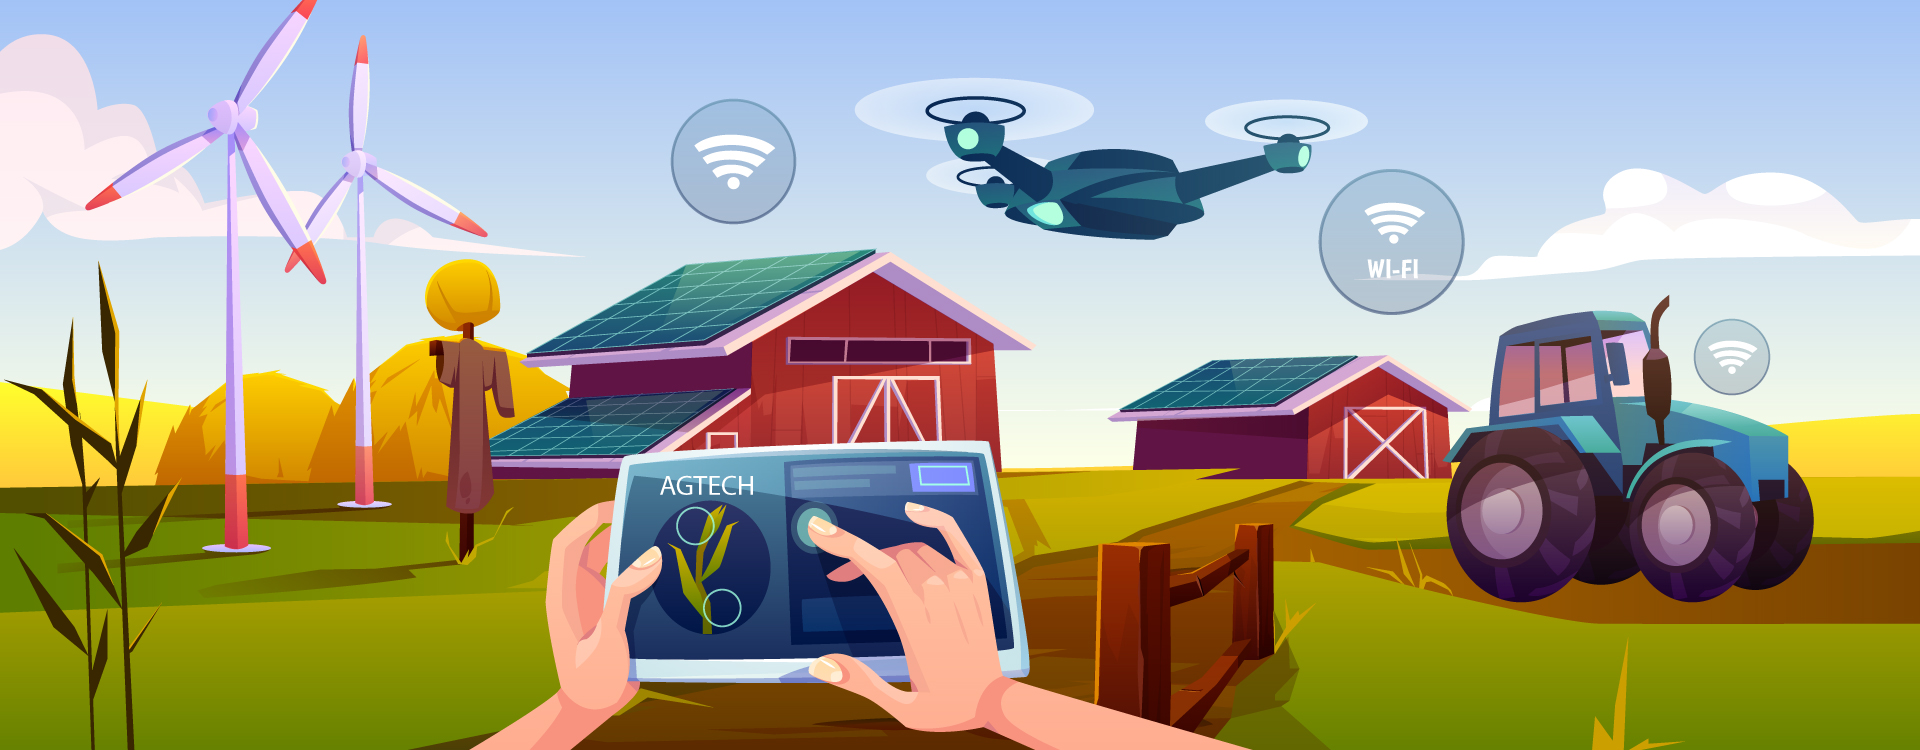 What are the trends to be expected in the agtech and agriculture sector post 2020?